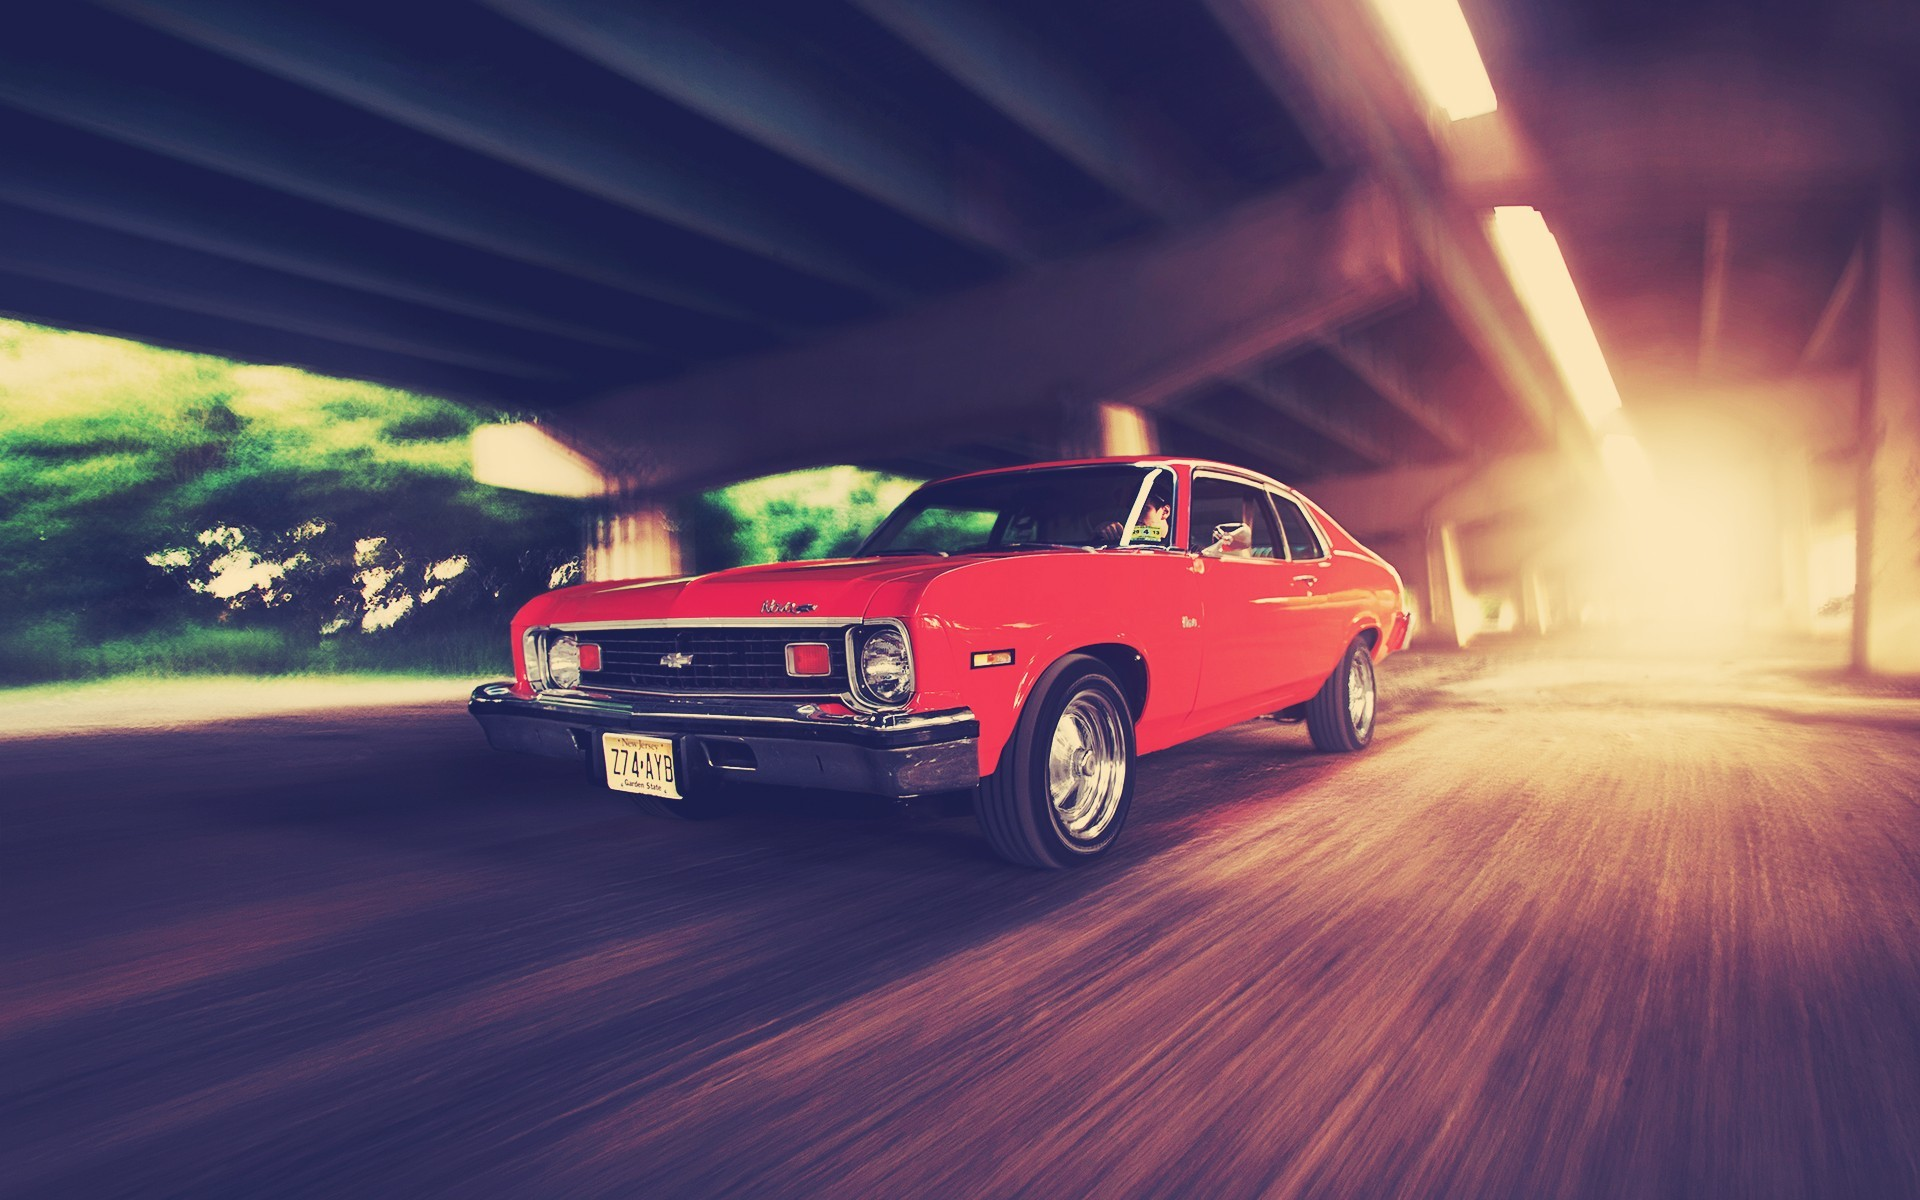 Chevy Nova HD Wallpaper | Background Image | 1920x1200 | ID:336673 - Wallpaper Abyss